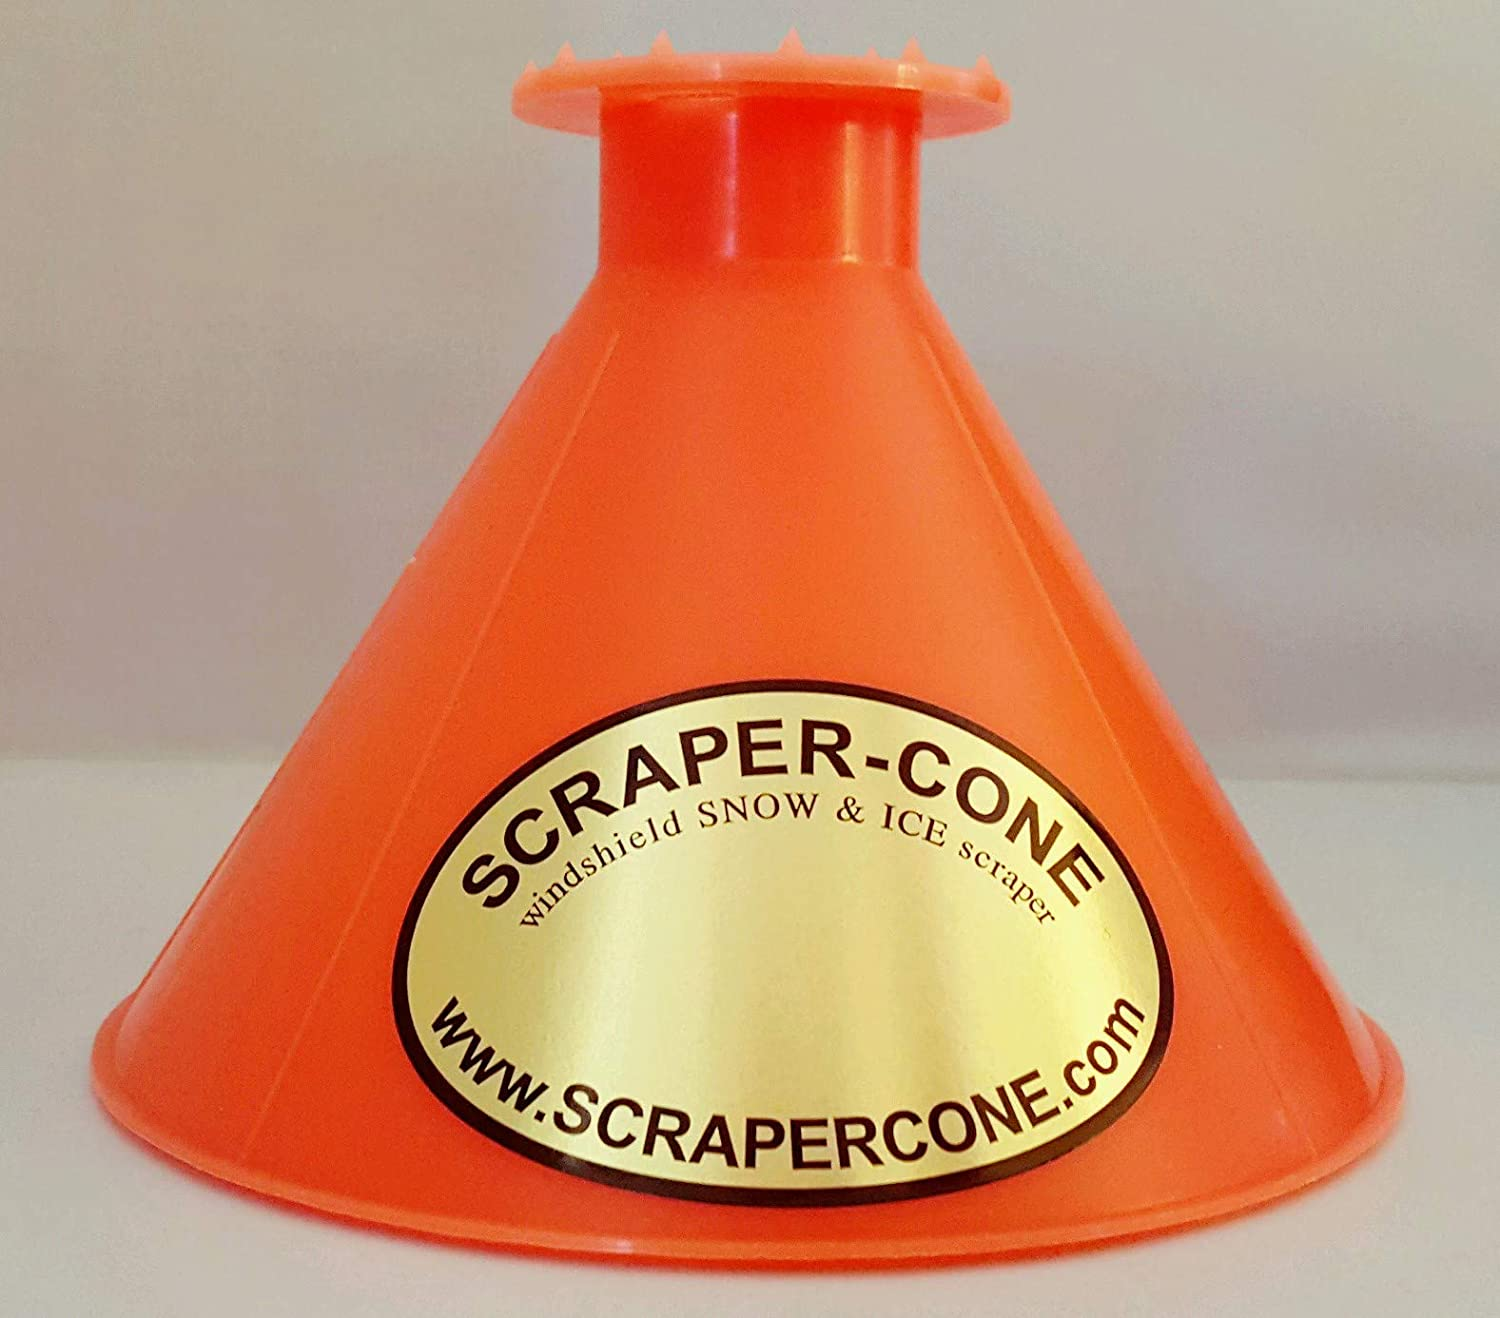 SCRAPER CONE 2 Pack of The Original Ice Scraper Made and Sold in The USA! Scrape a Round Ice Scraper